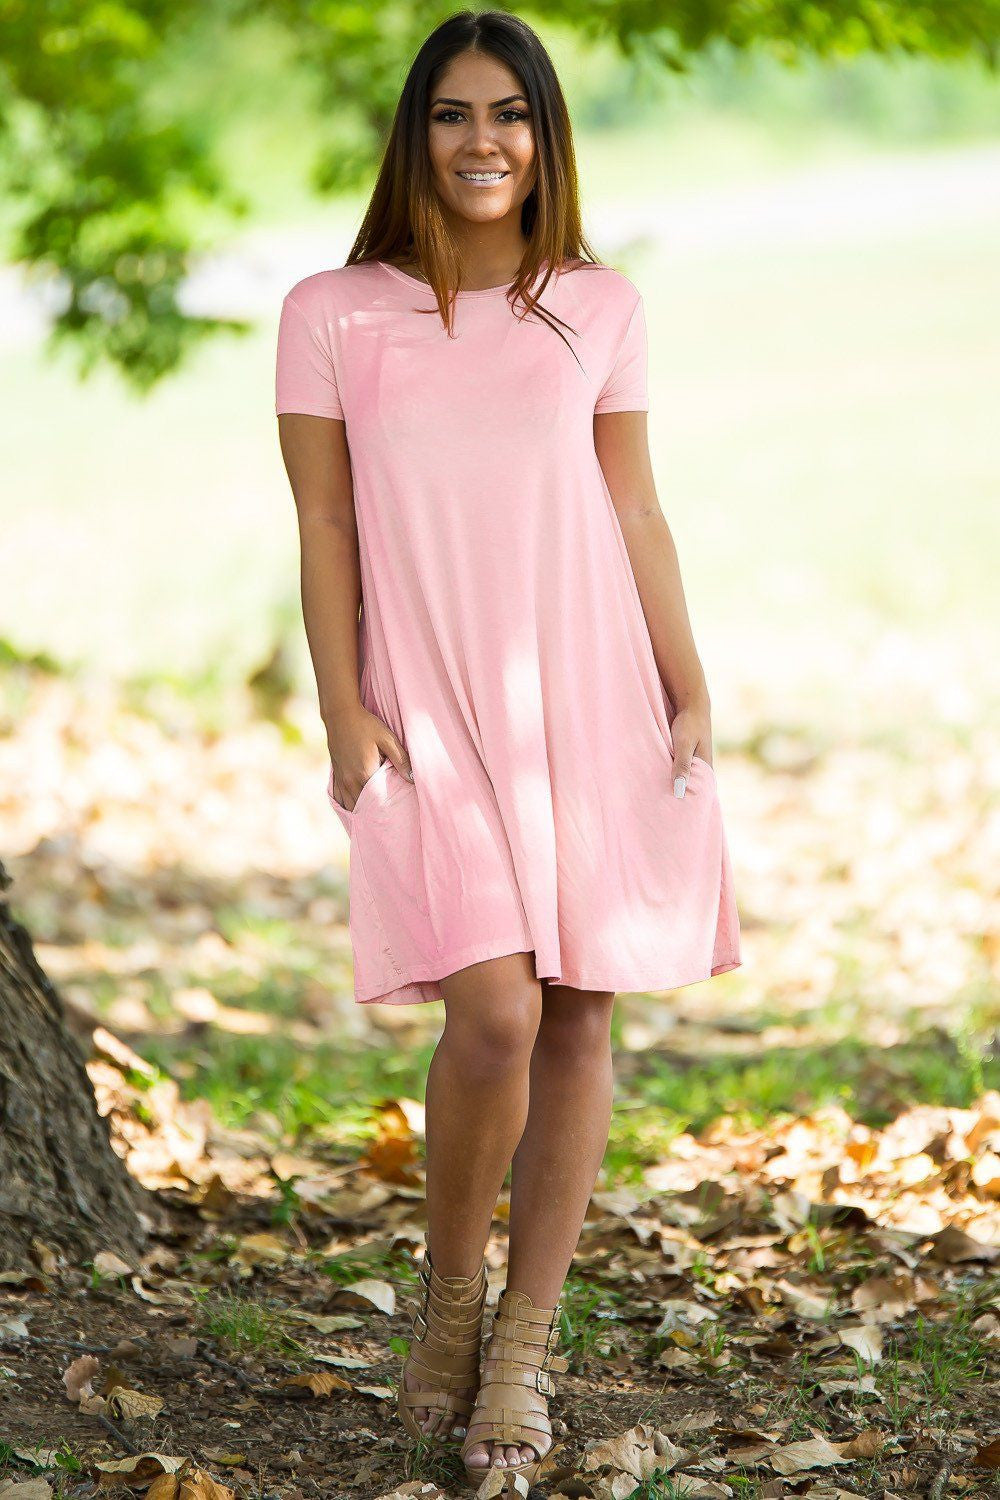 Piko Short Sleeve Swing Dress - Peach - Piko Clothing